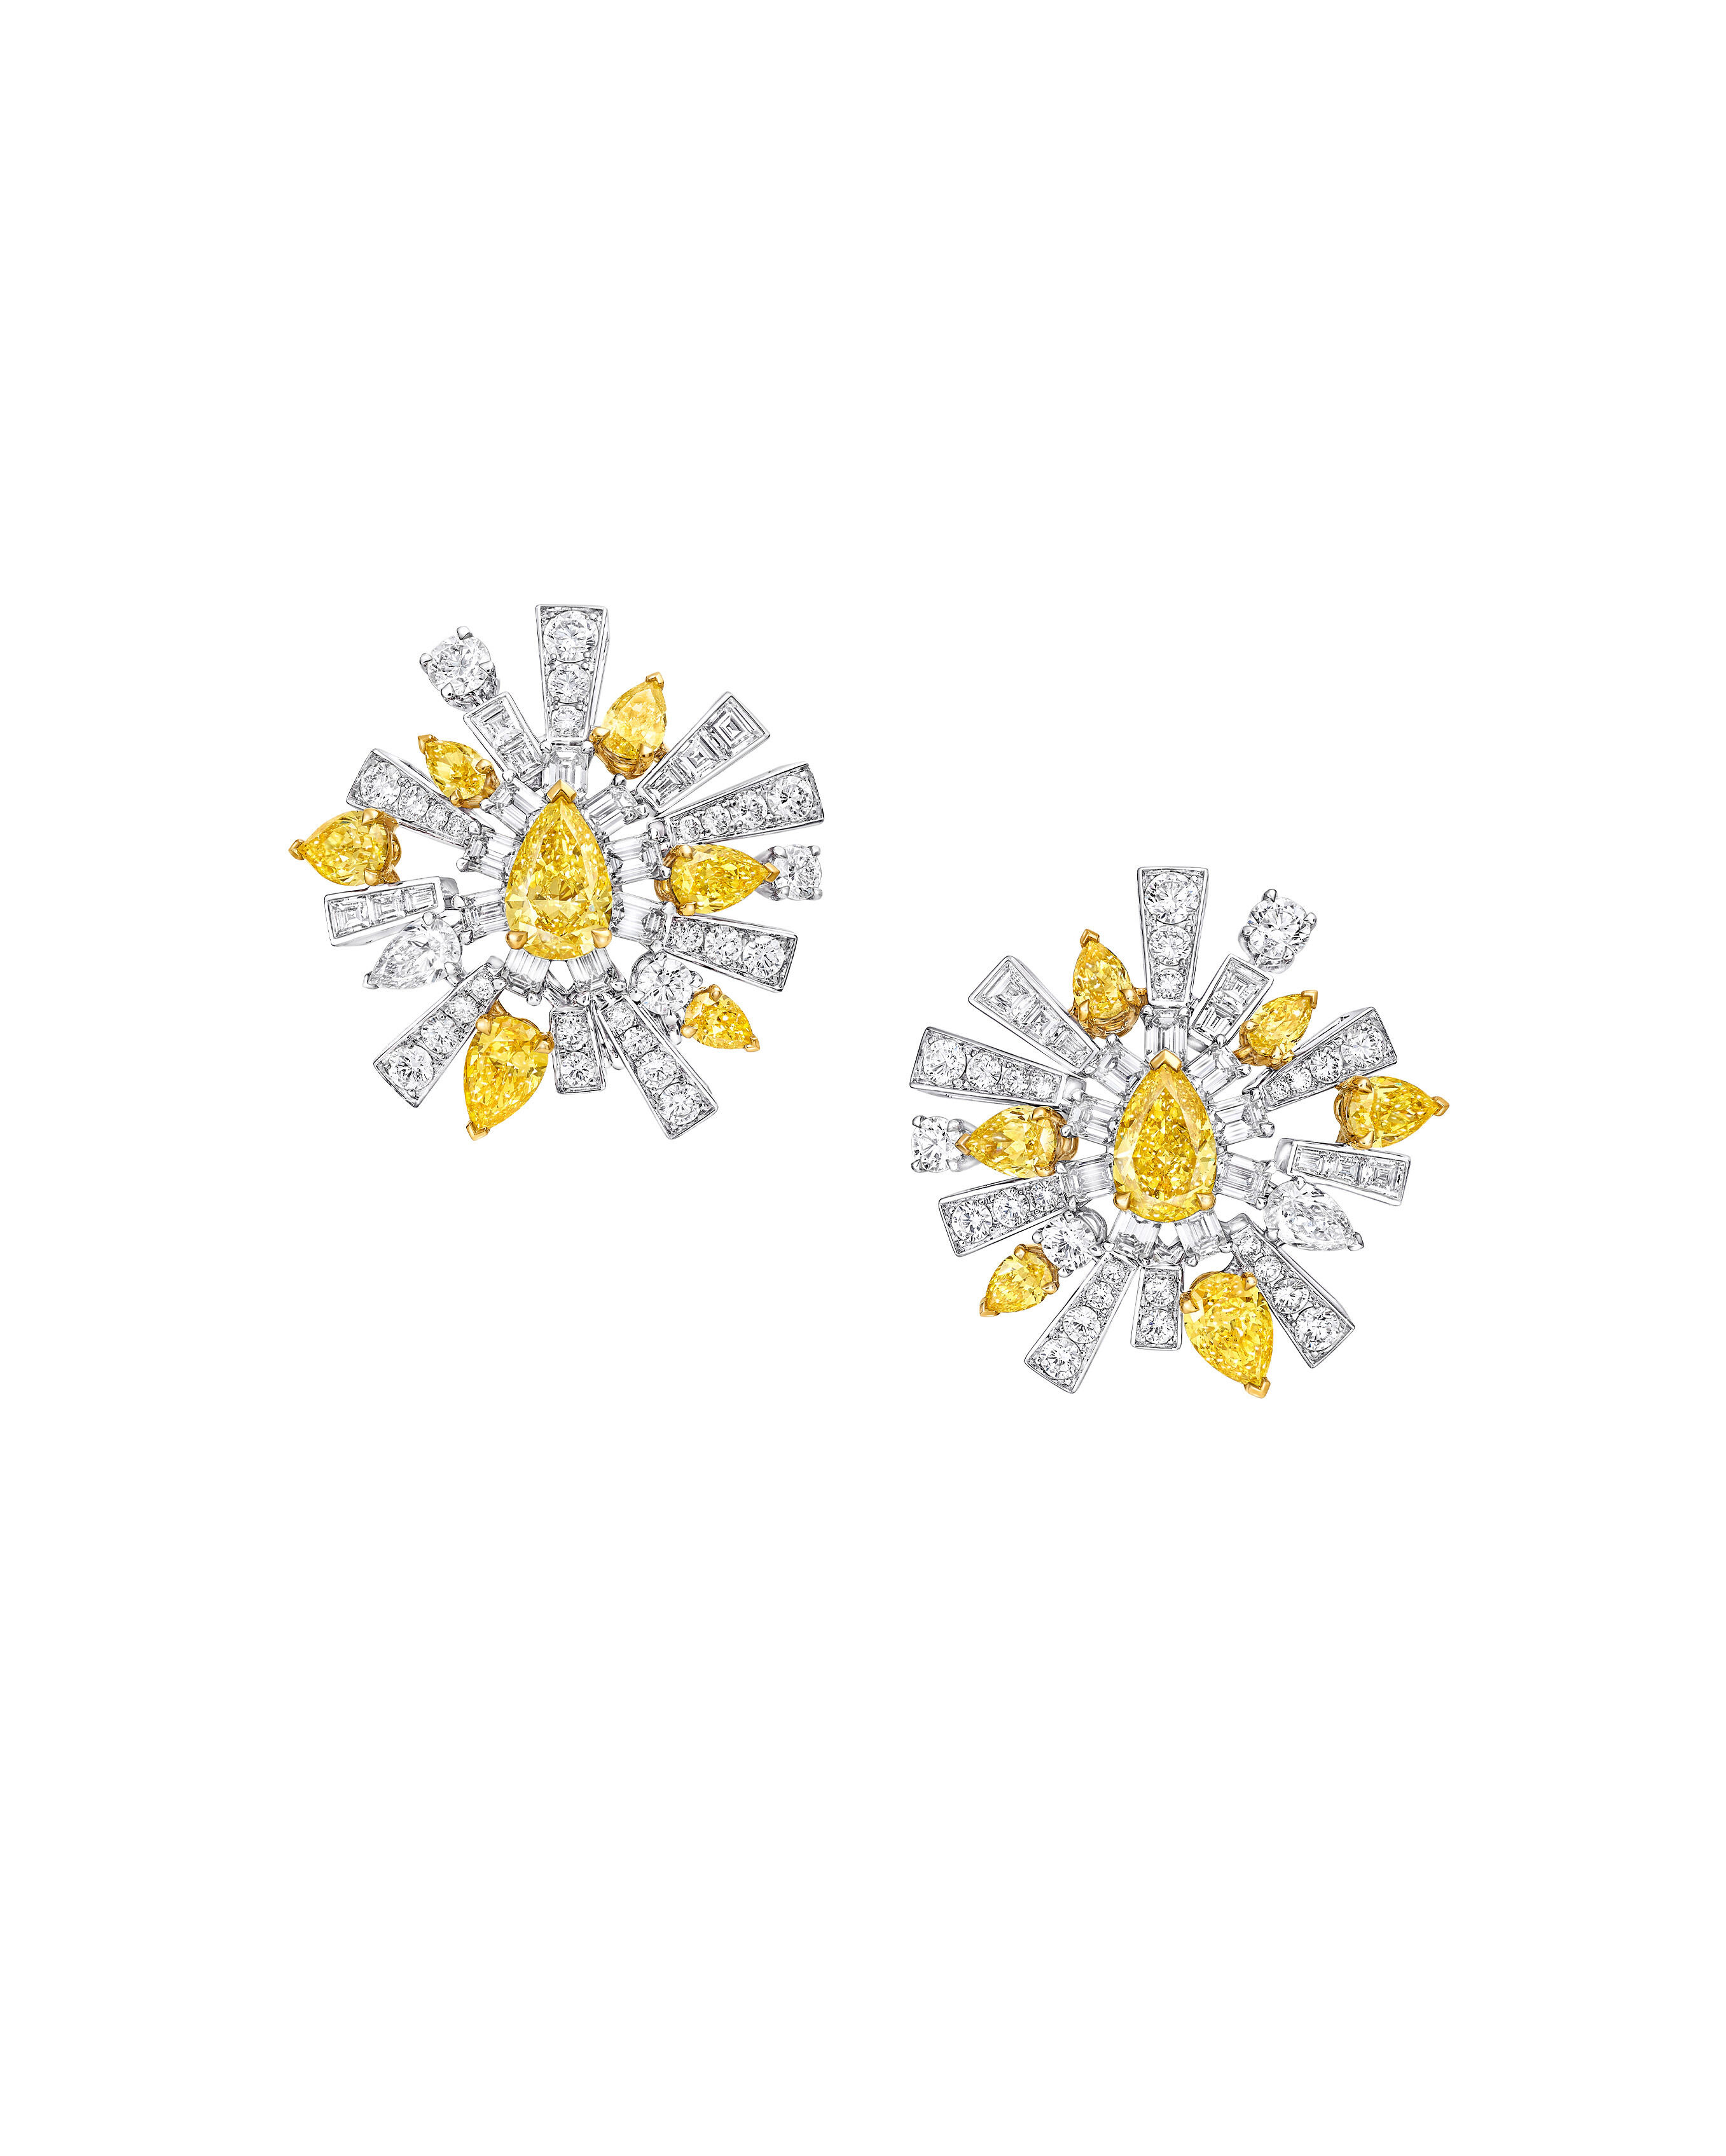 a New Daw yellow and white diamond high jewellery stud earrings form the Graff Tribal collection